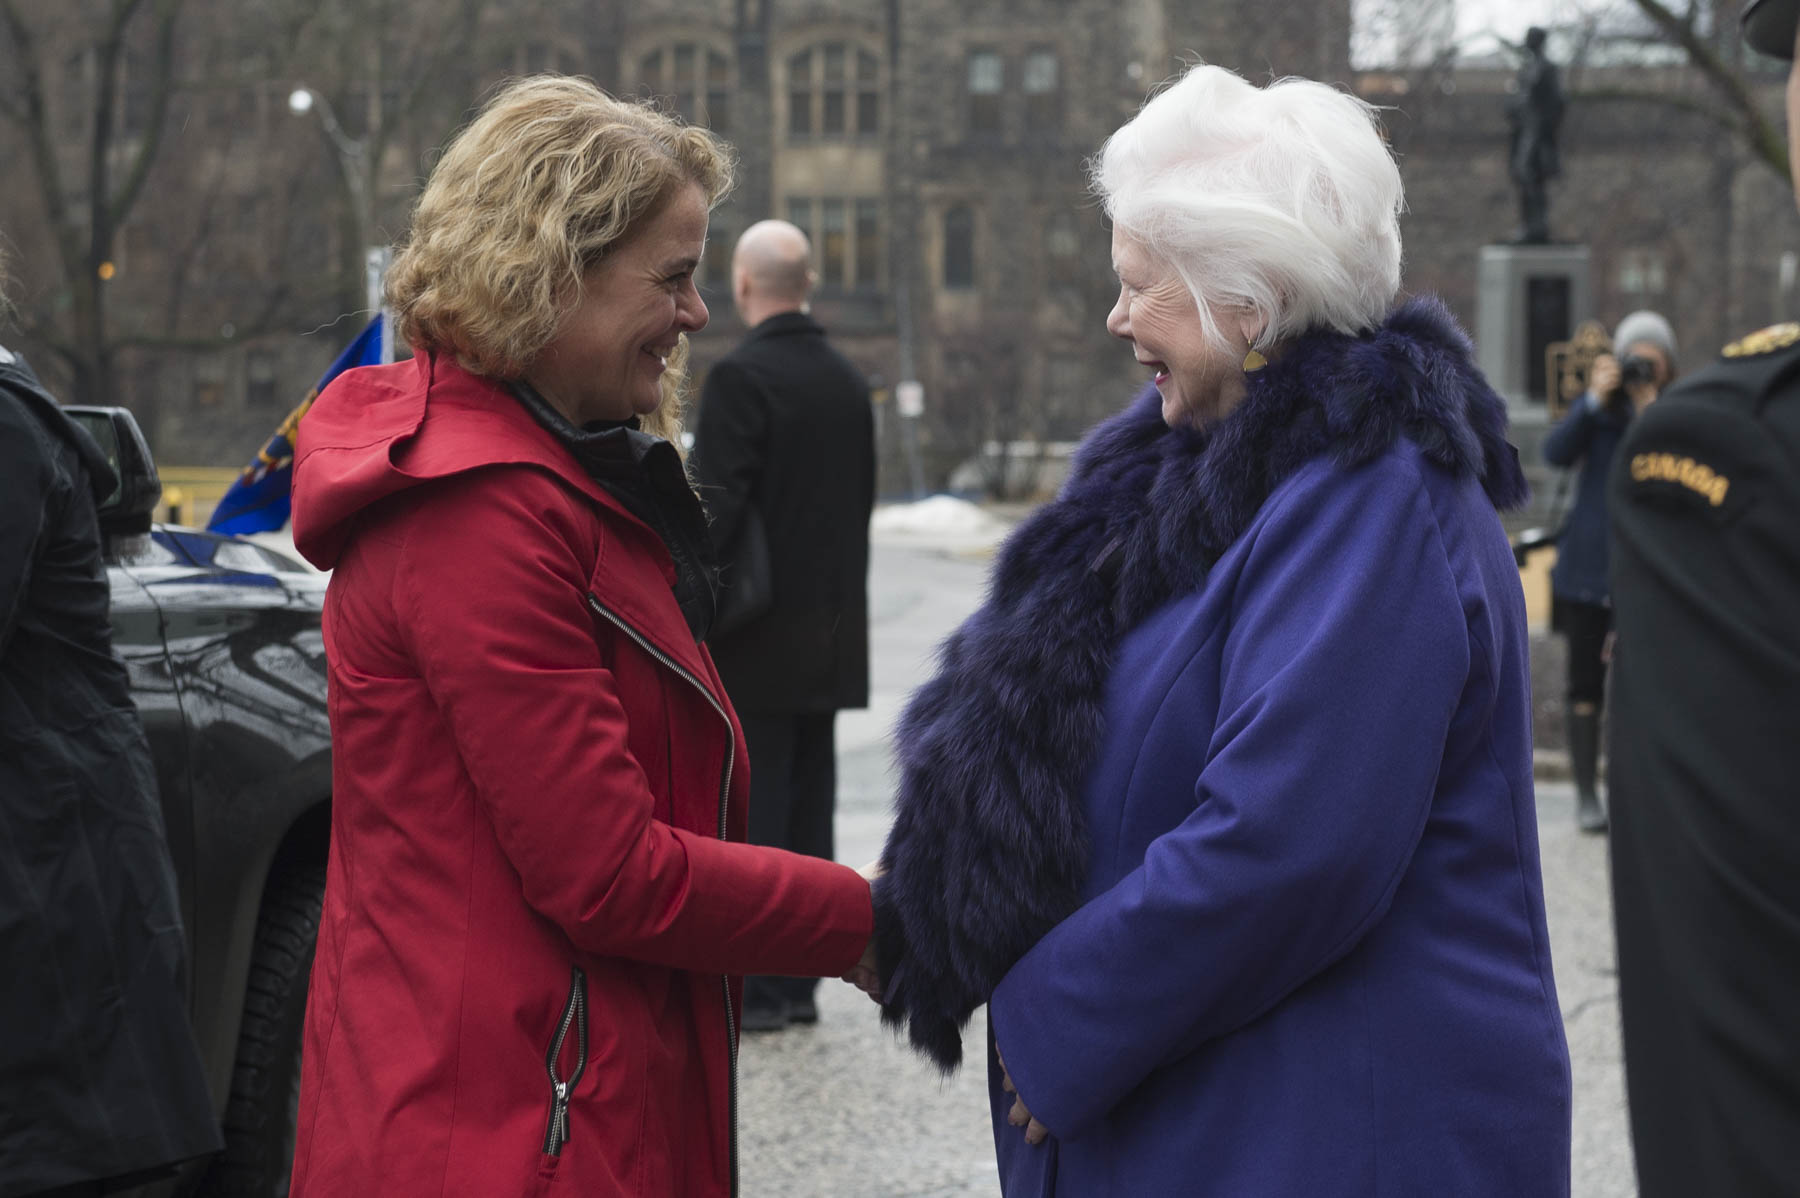 Upon arrival in Toronto, the Governor General was greeted by Her Honour the Honourable Elizabeth Dowdeswell, Lieutenant Governor of Ontario outside of Queen's Park.